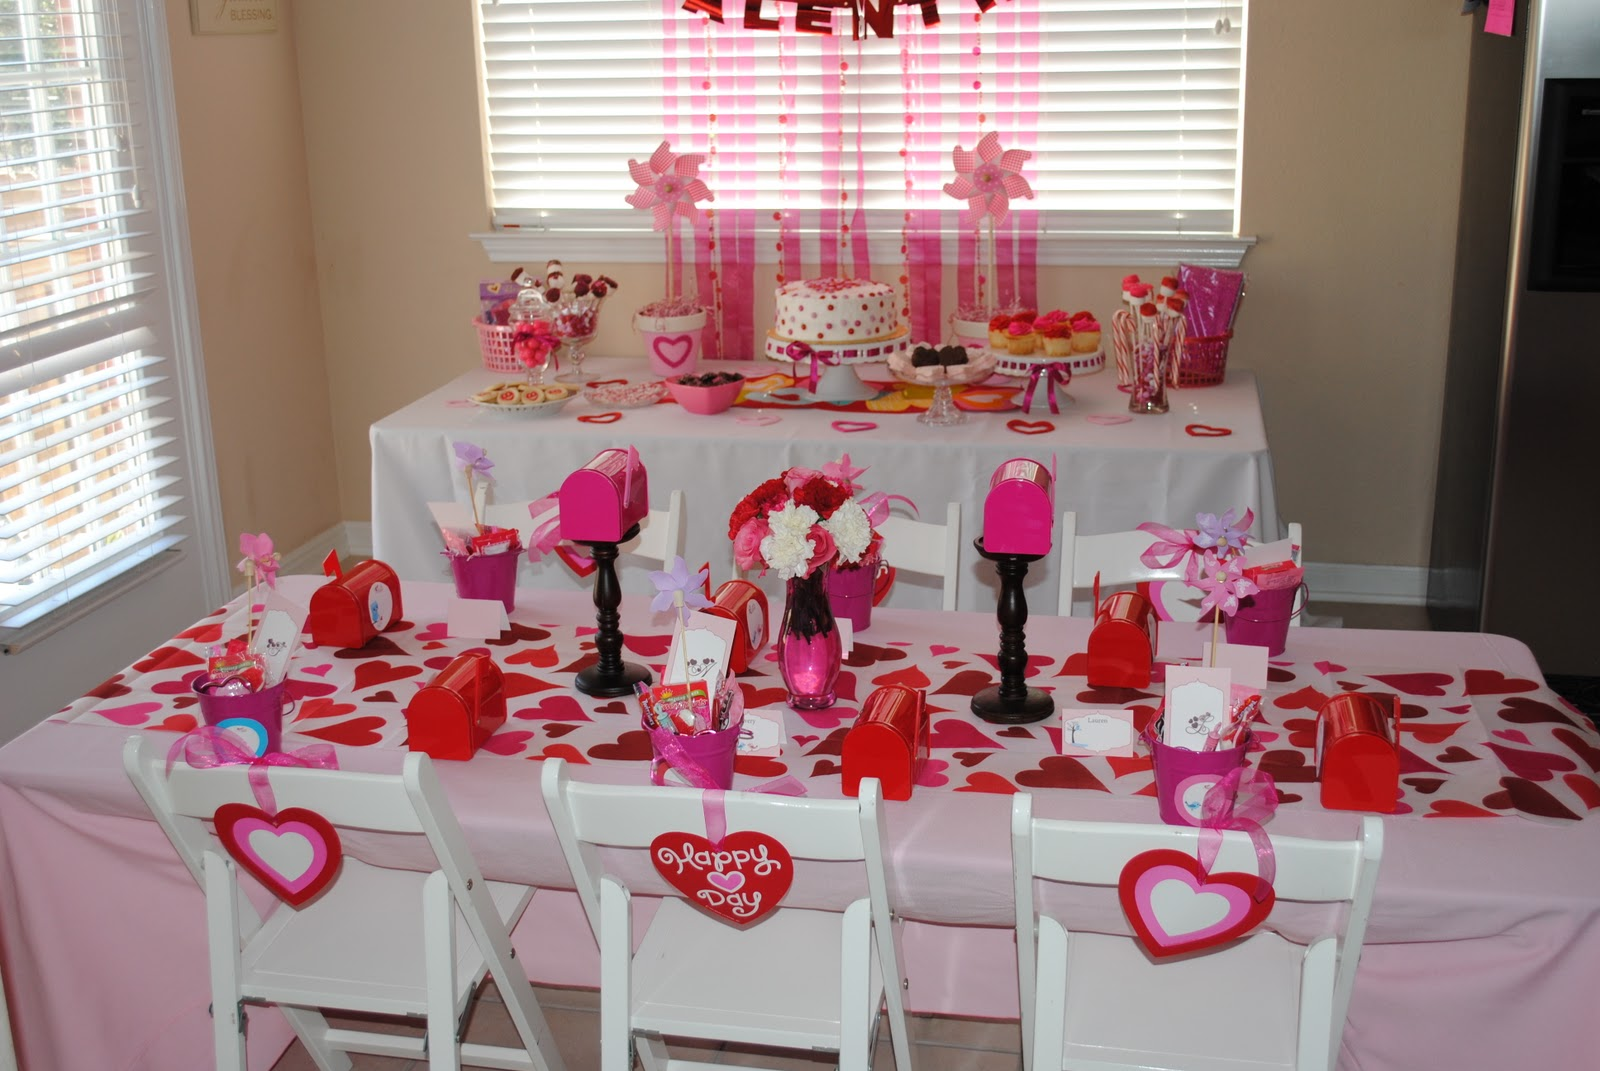 Re heart party katief241981 is at 10 beautytalk for Heart decorations for the home